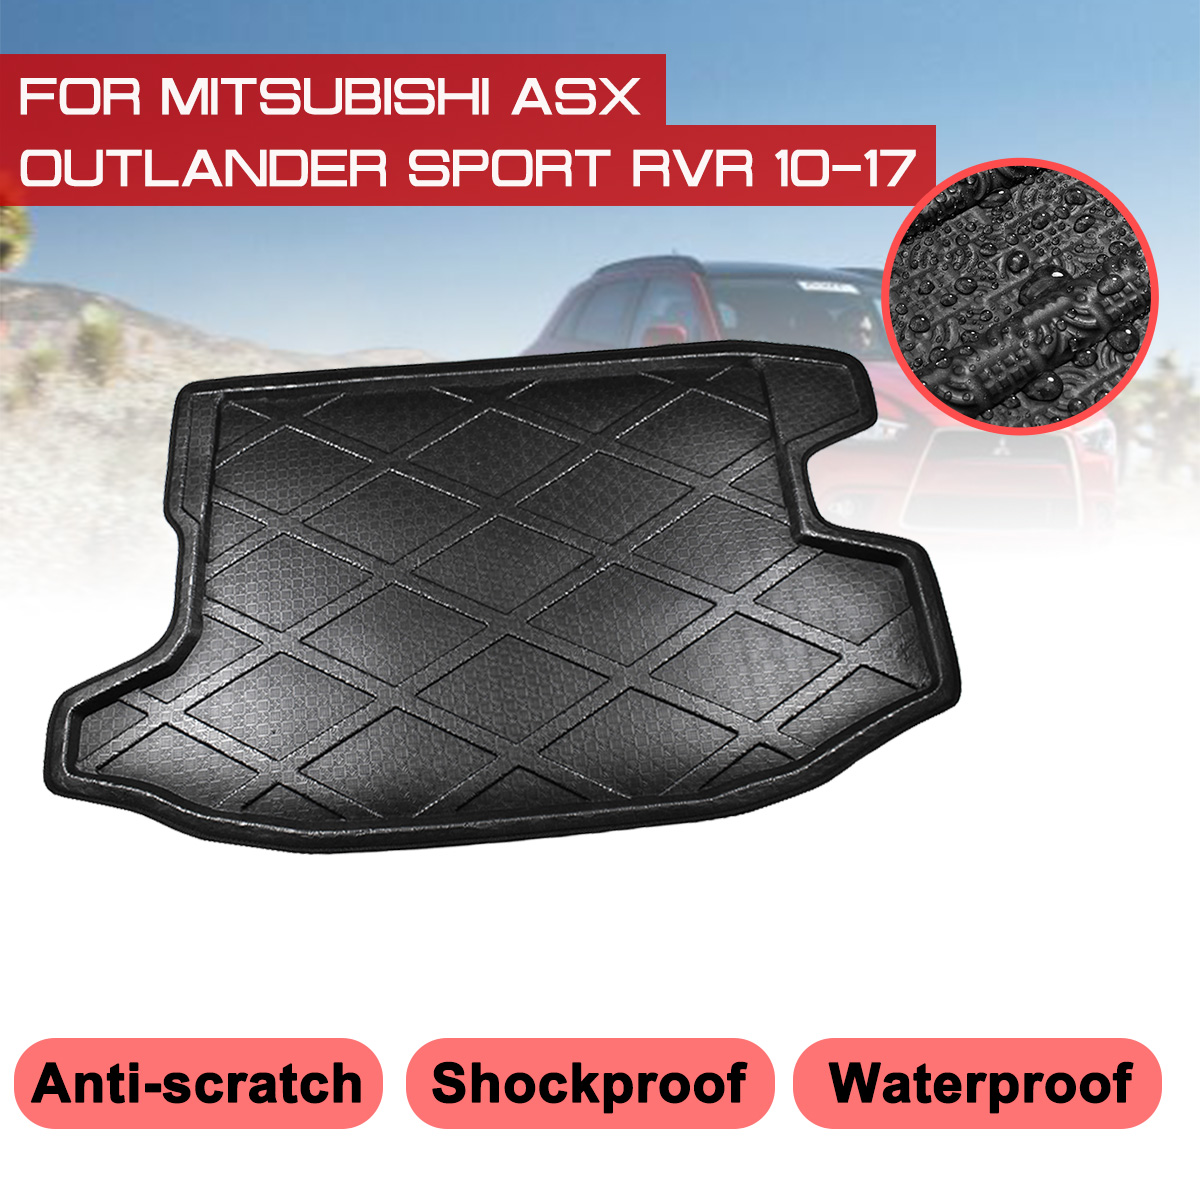 For Mitsubishi ASX  Outlander Sport RVR 2010 2017 Car Rear Trunk Boot Mat Waterproof Floor Mats Carpet Anti Mud Tray Cargo Liner|  -